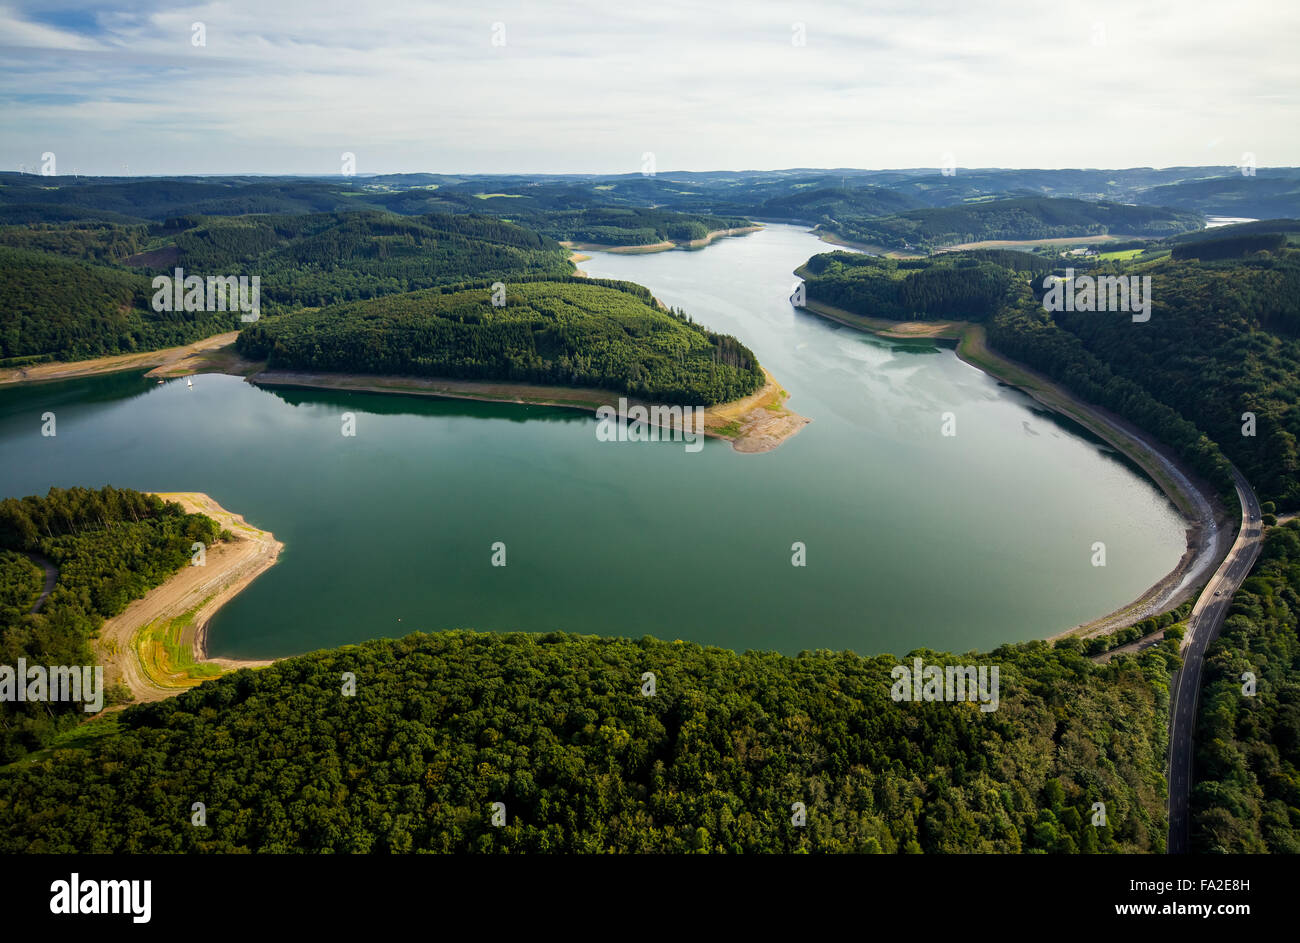 Aerial view, Gilberginsel, lowered water levels in the Biggetalsperre to repair the Felsschuettdammes, dam - Stock Image